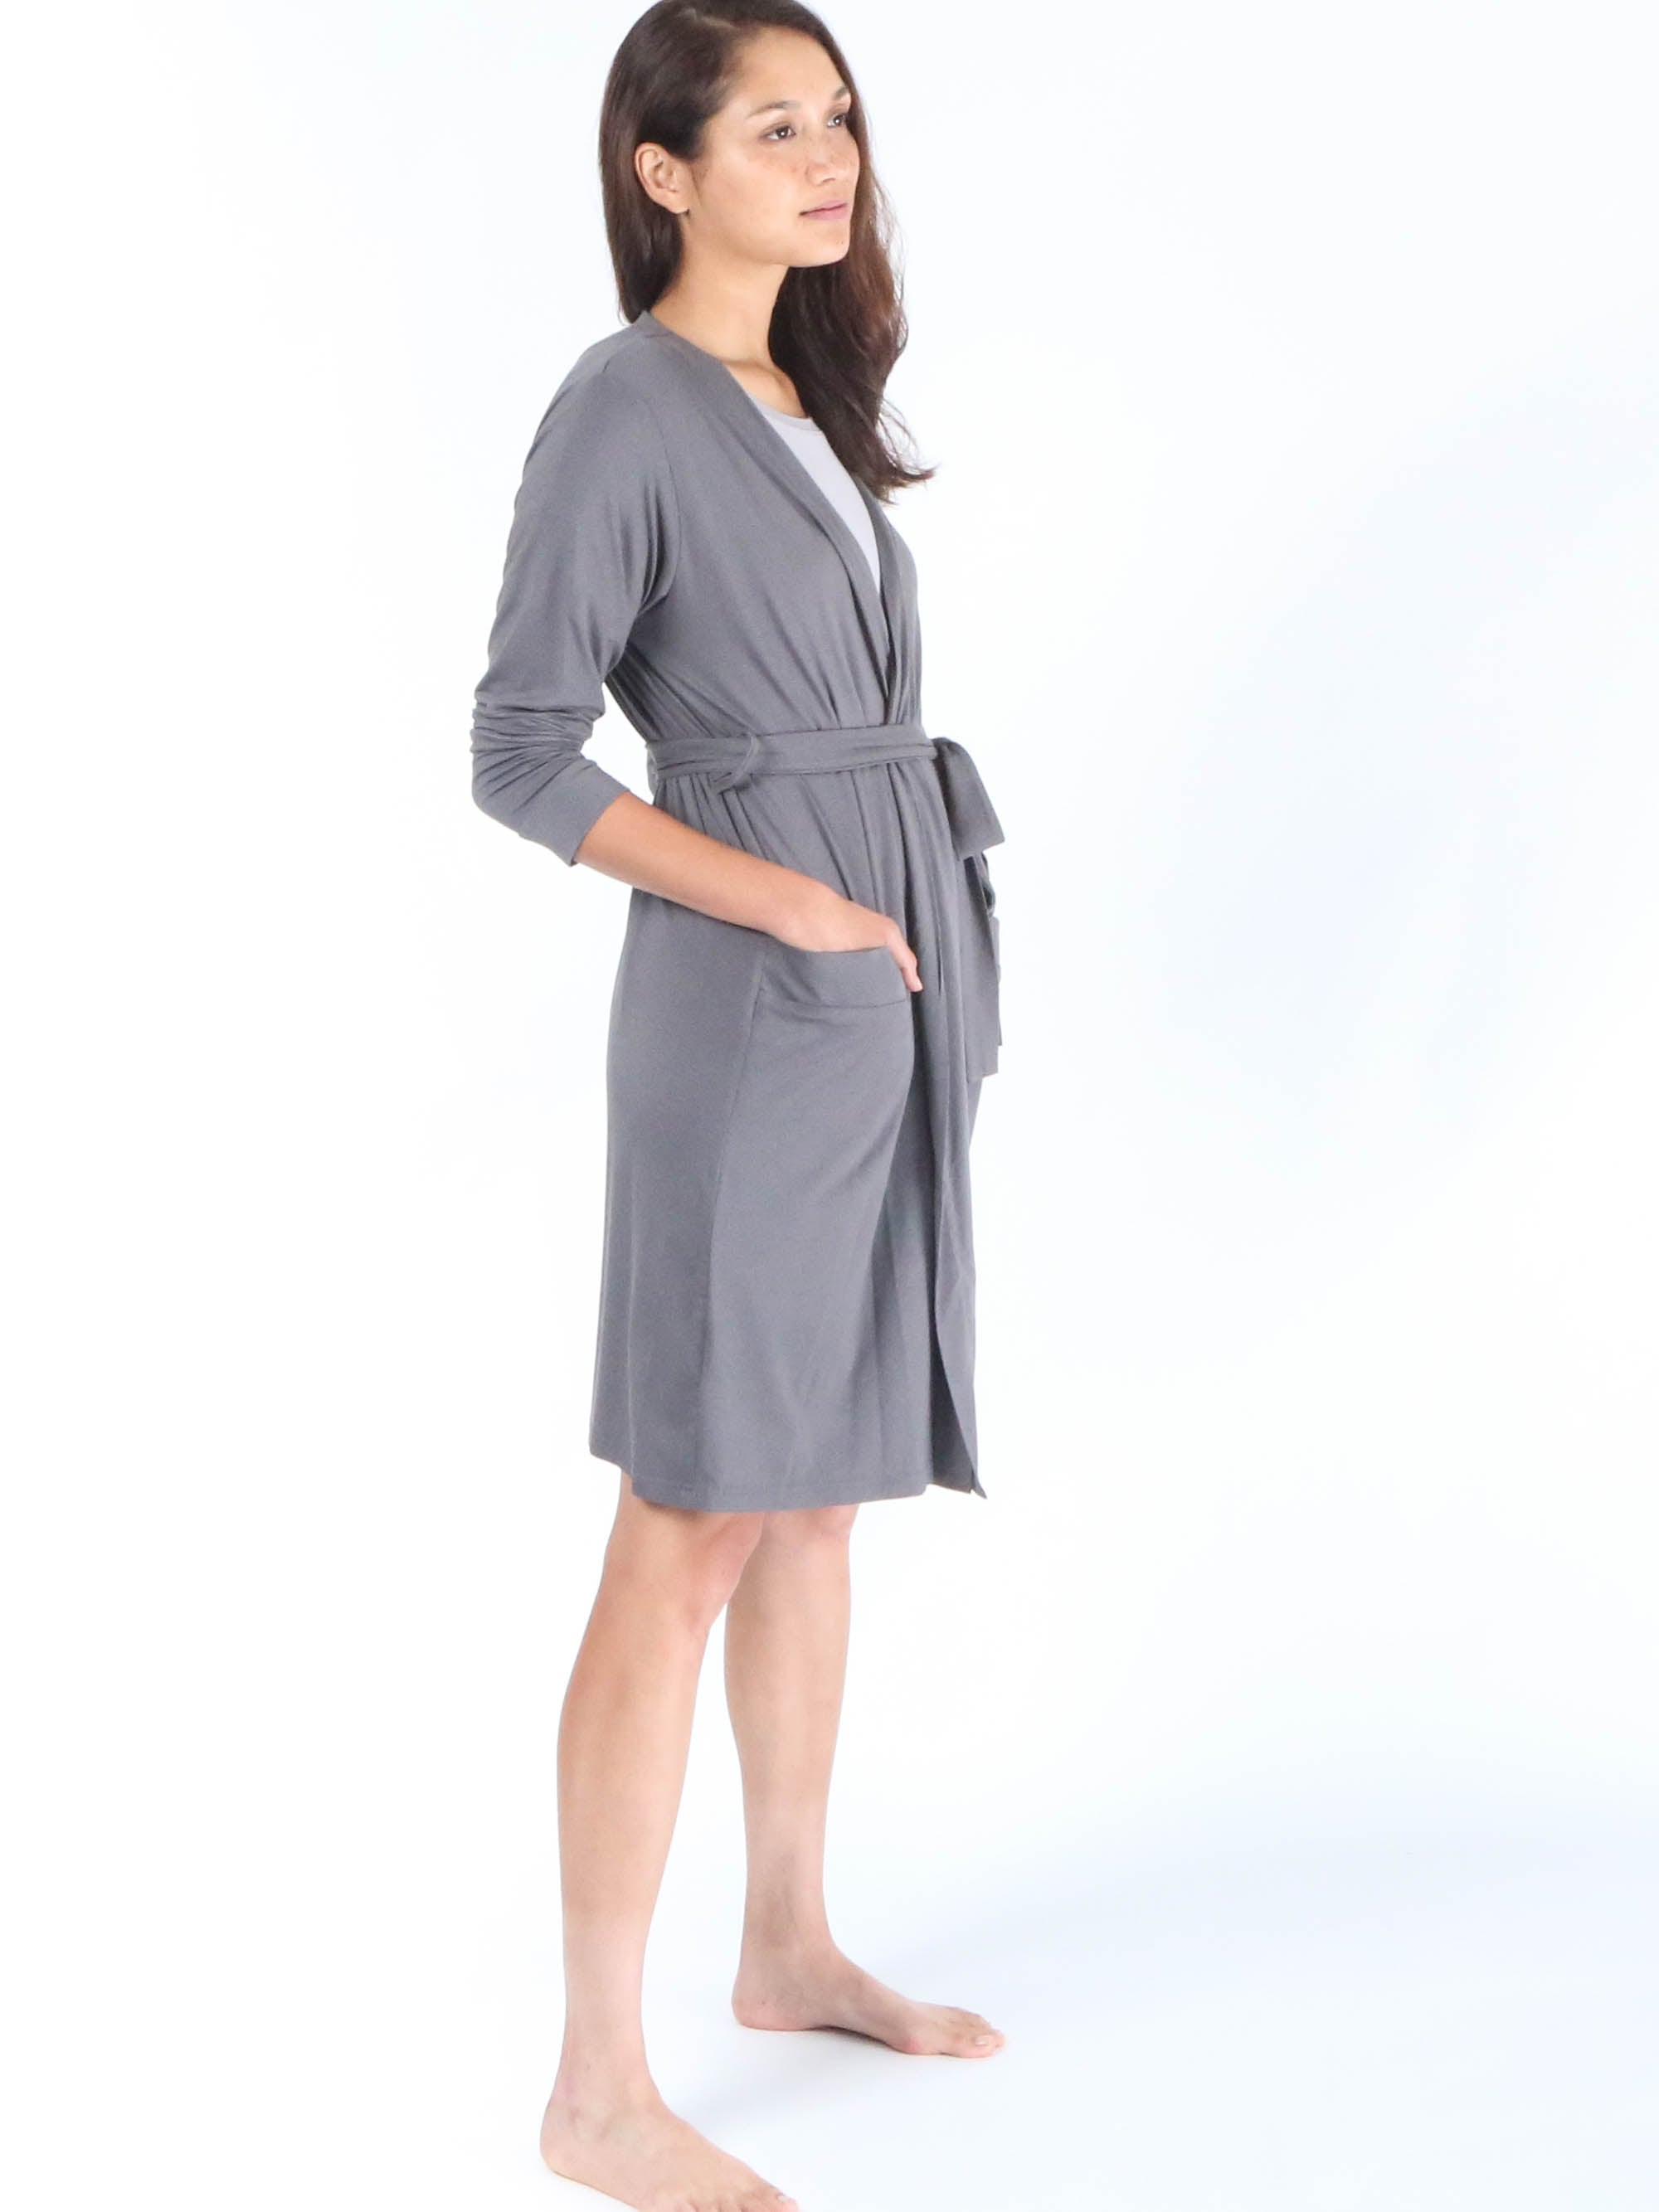 Shorty Robe - Slate